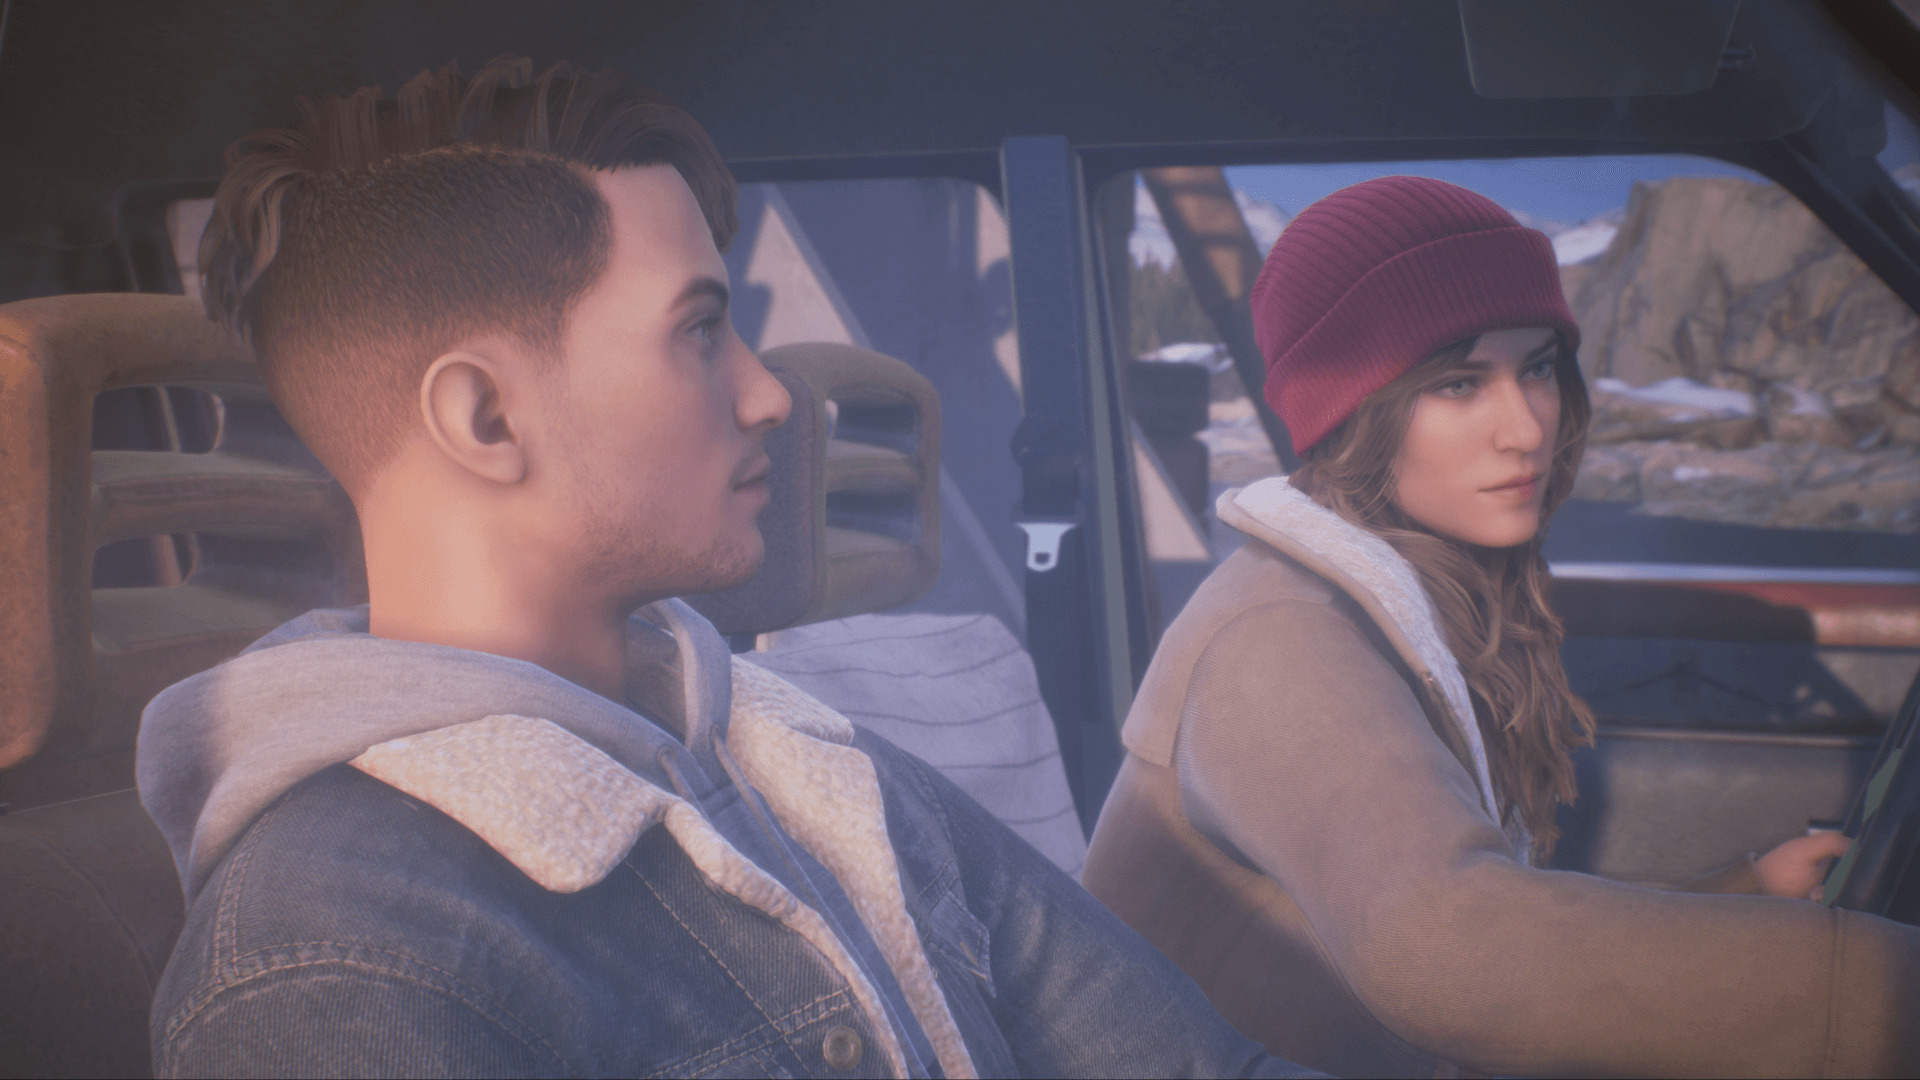 Dontnod Introduces Tell Me Why, a New Game Featuring a Transgender Lead